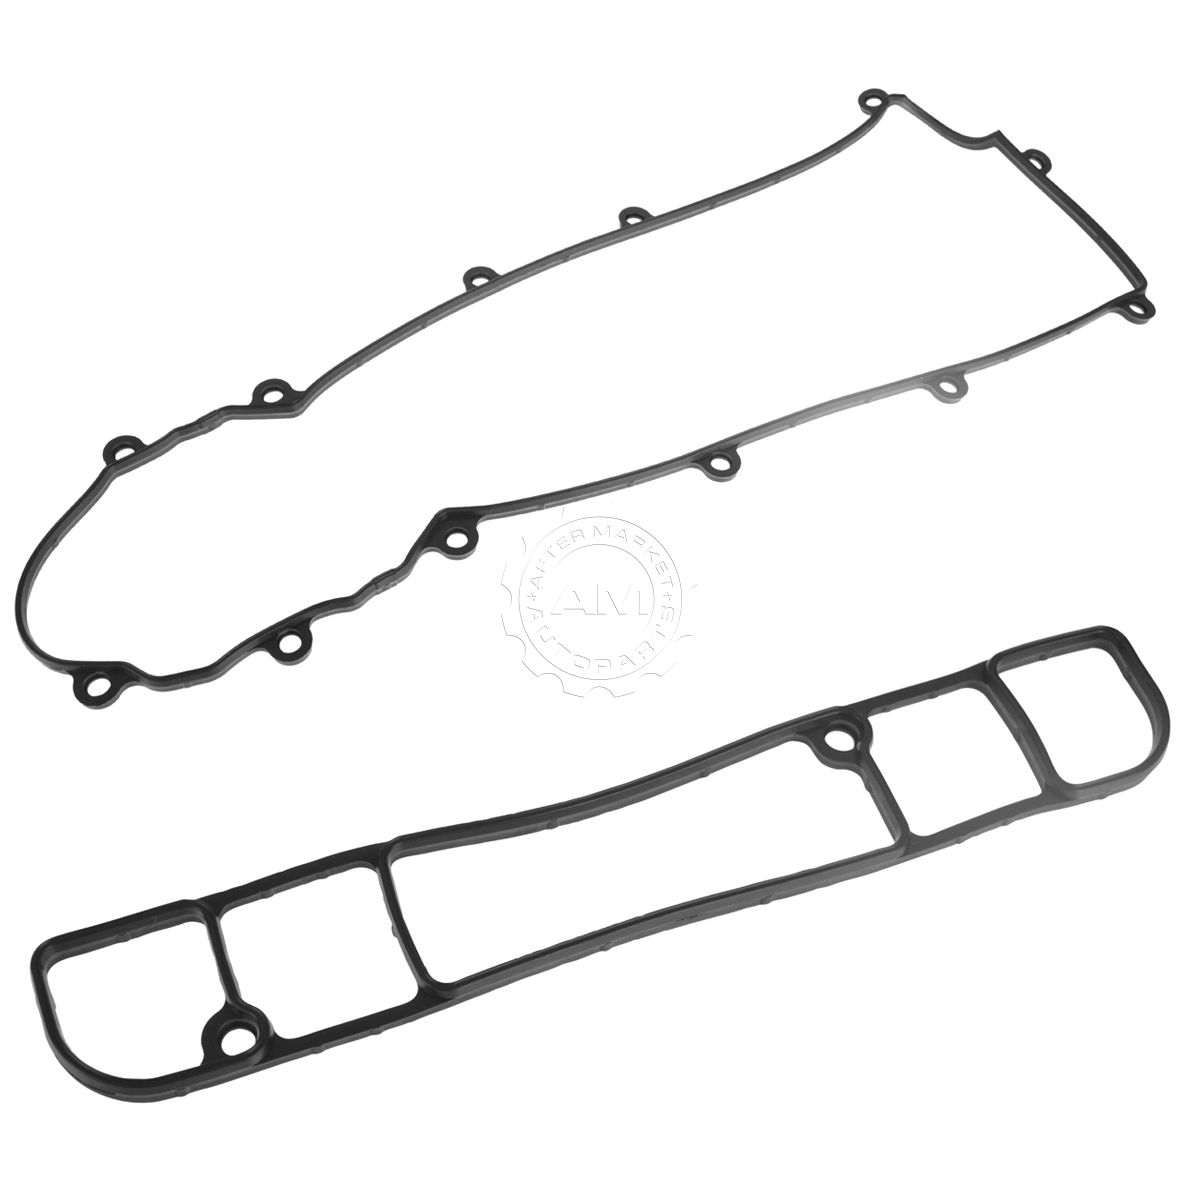 OEM L3K910230 Valve Cover Gasket for Mazda 3 6 CX-7 2.3